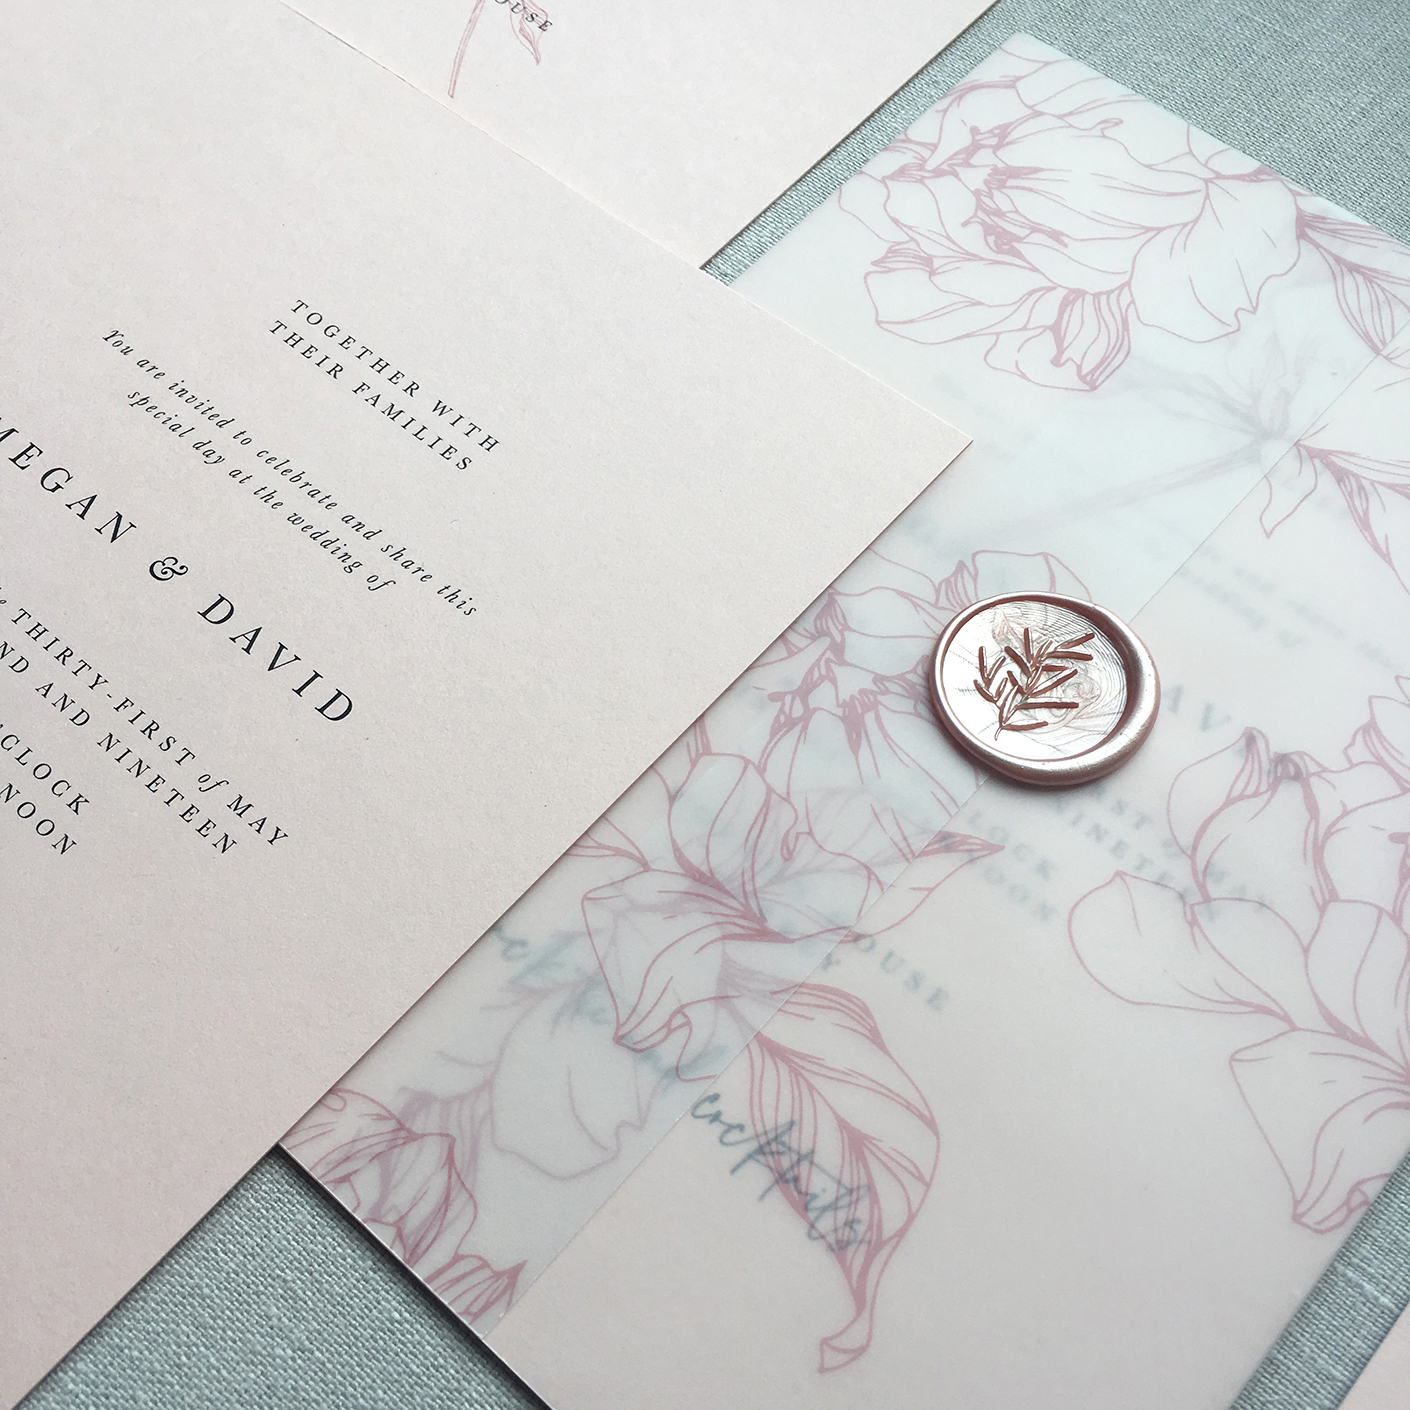 sq_blush_pink_navy_wedding_invitation_vellum_wrap_modern_elegant_romance_9.jpg